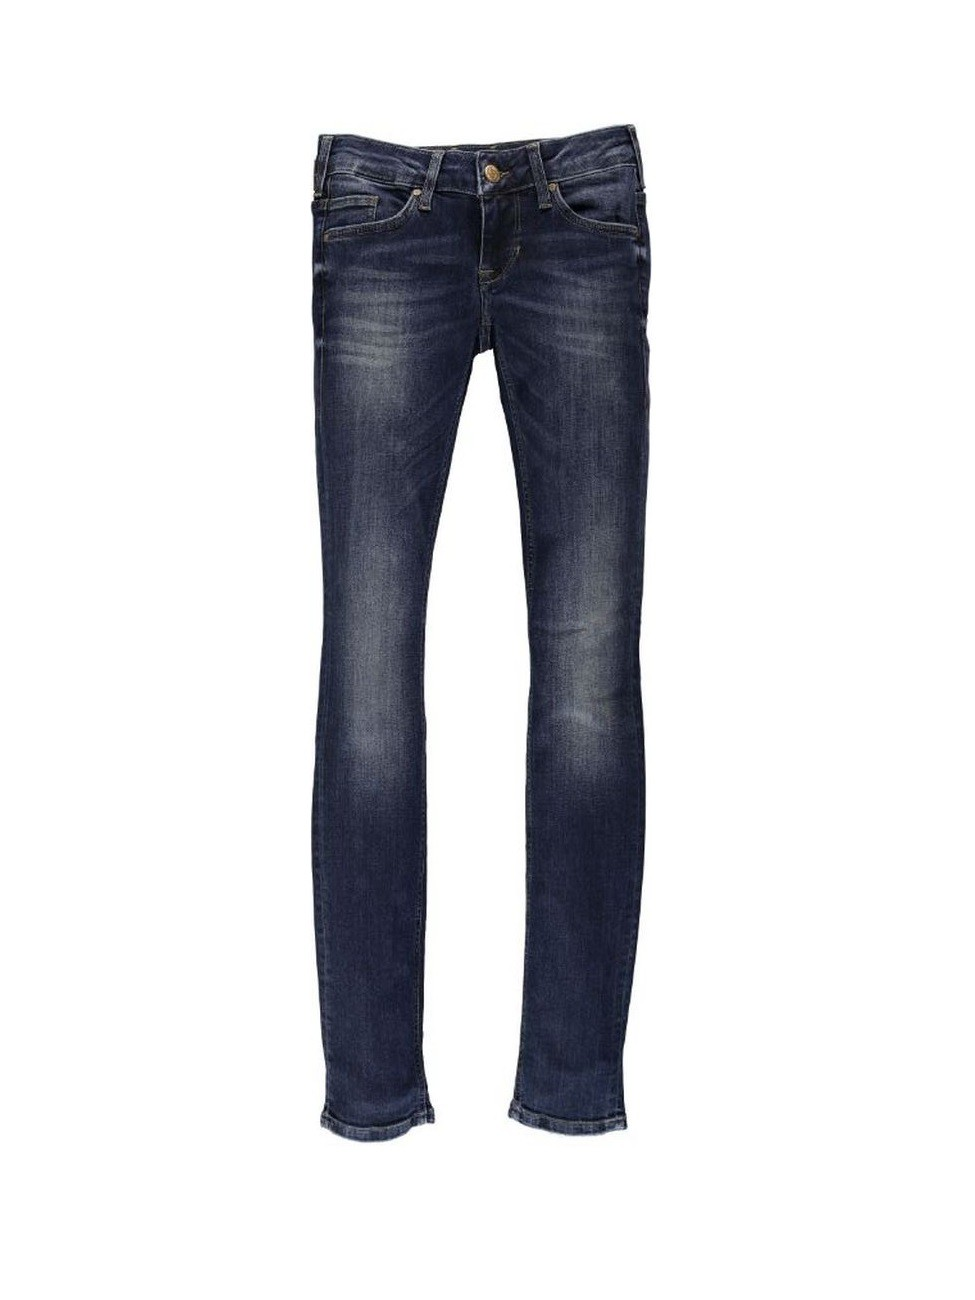 Mustang Damen Jeans Gina Skinny - Slim Fit - Dark Scratched Used W 31 L 32, dark scratched used